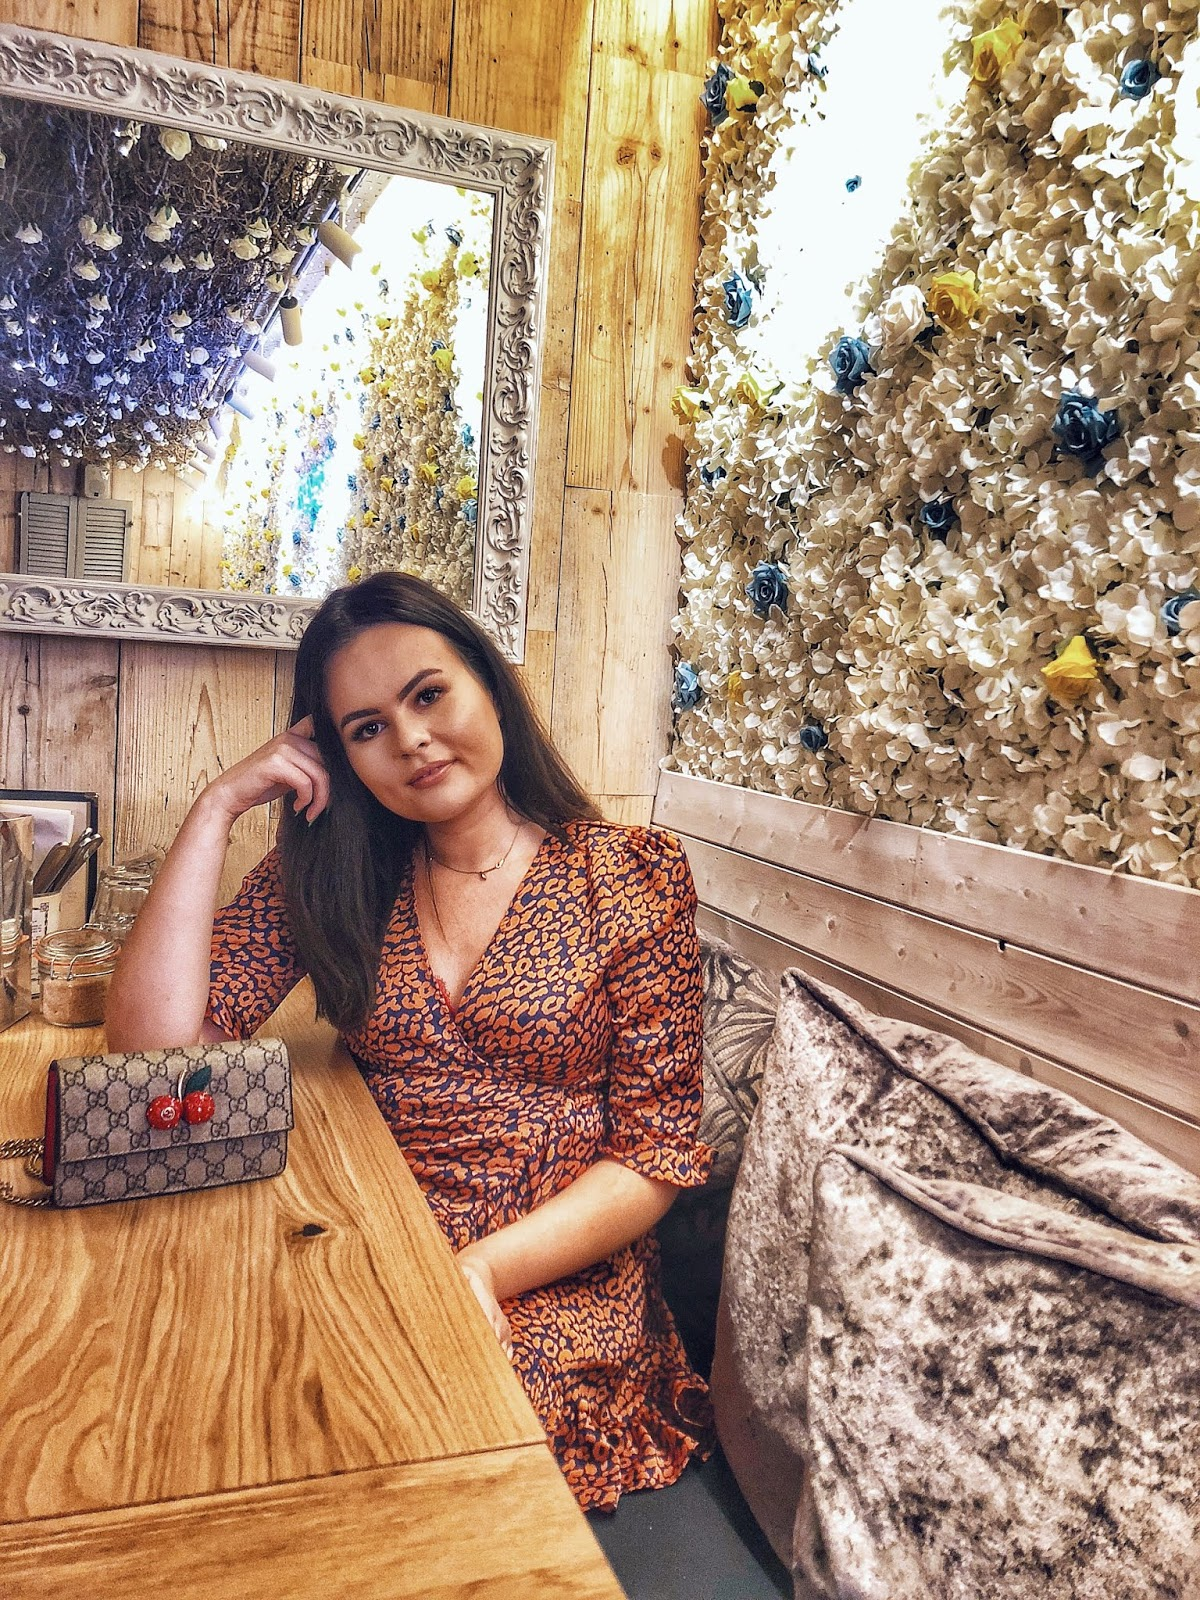 boohoo Satin Leopard Print Ruffle Wrap Tea Dress, cheap never fully dressed, never fully dressed discount code, megans balham, instagram places in london, cheap bottomless brunch in london, under £20 bottomless brunch